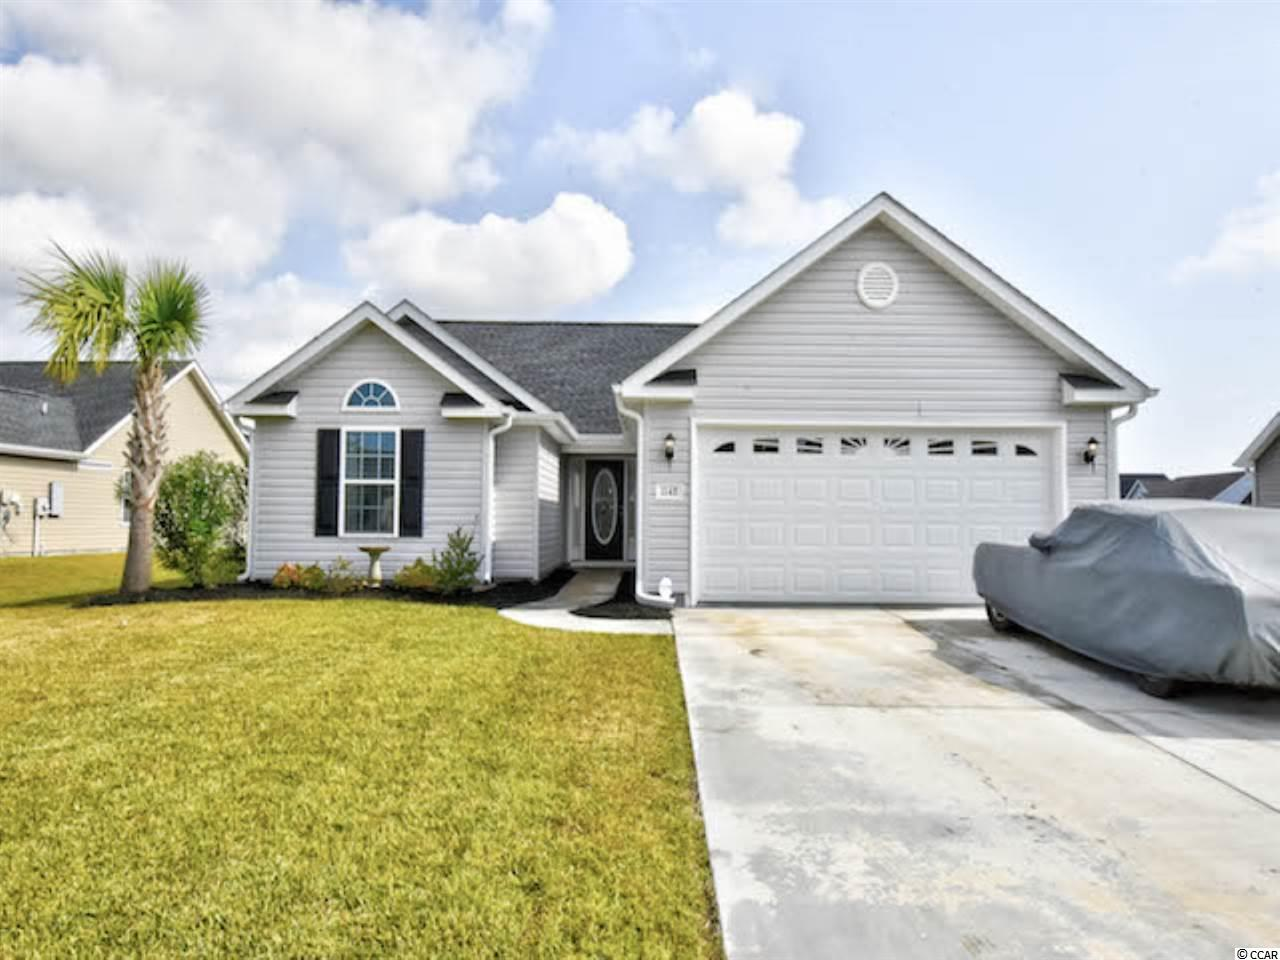 Welcome home to this spacious 3 bed, 2 bath home with a lake view in the Mallard Landing Park community of Surfside Beach! This home features an open floor plan with vaulted ceiling and luxury vinyl plank flooring. The kitchen offers ample granite countertops and matching tile backsplash, plenty of cabinet space, and modern stainless steel appliances.  The vast living area flows through glass French doors out to the oversized screen porch, allowing lots of natural light and perfect for entertaining. The master suite includes a vaulted ceiling and ceiling fan, large walk-in closet and an en-suite bath featuring dual sinks and a walk-in shower. The other two generously sized bedrooms share access to a full bath. Your Mallard Landing address is just minutes from the beach and all of the dining, entertainment, and shopping the Grand Strand has to offer!